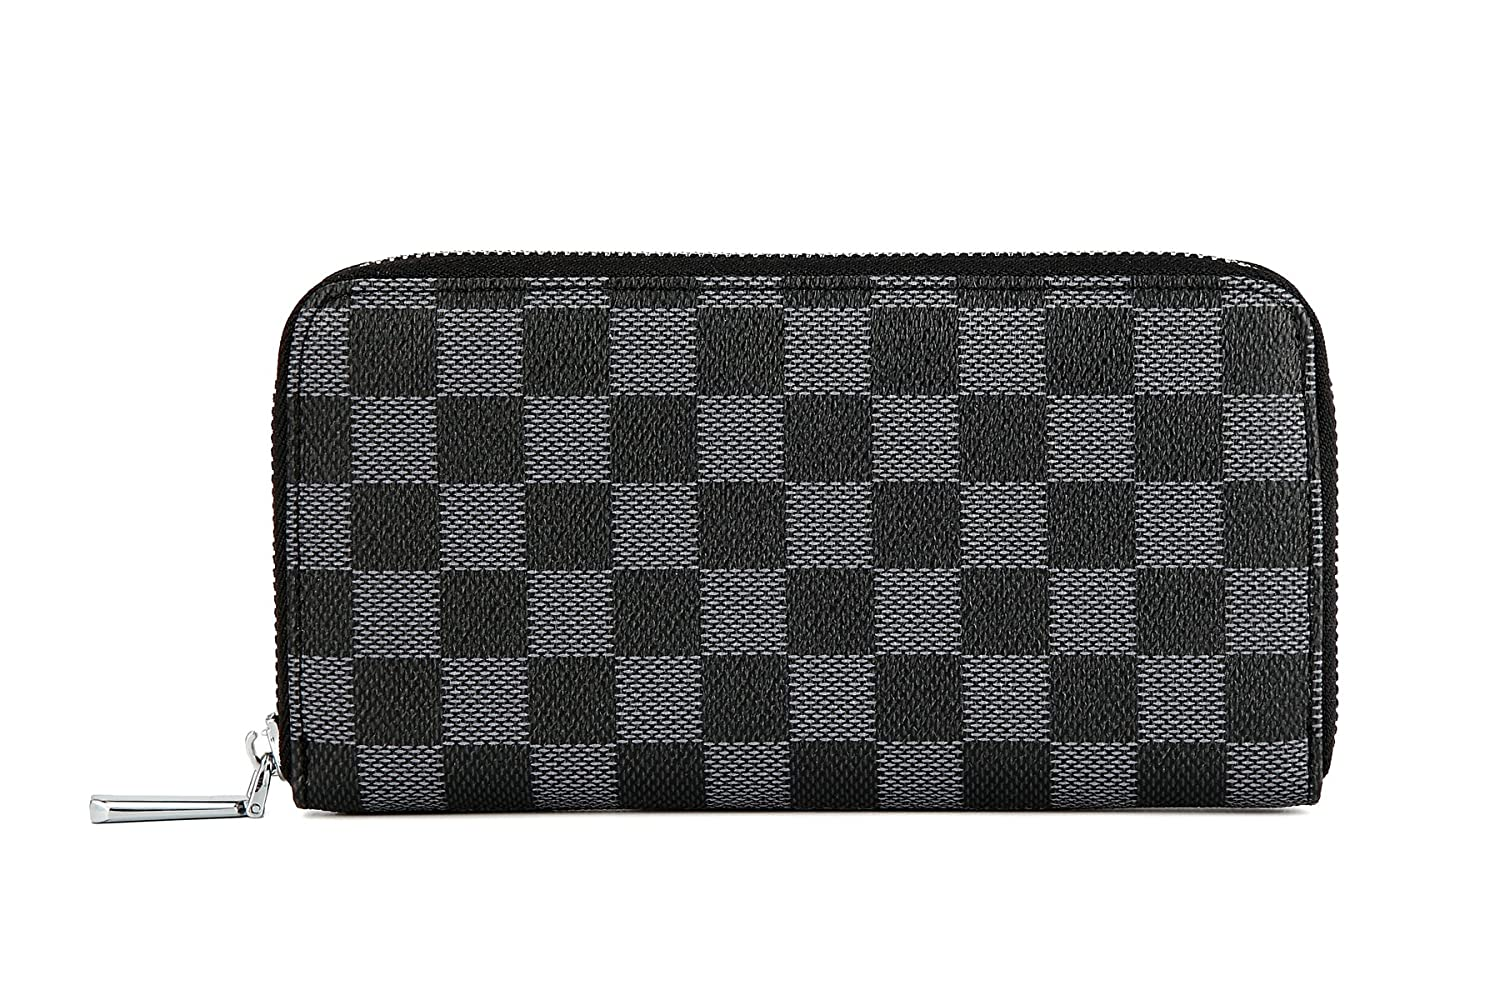 a49f02e9a923 Daisy Rose Women s Checkered Zip Around Wallet and Phone Clutch - RFID  Blocking with Card Holder Organizer -PU Vegan Leather